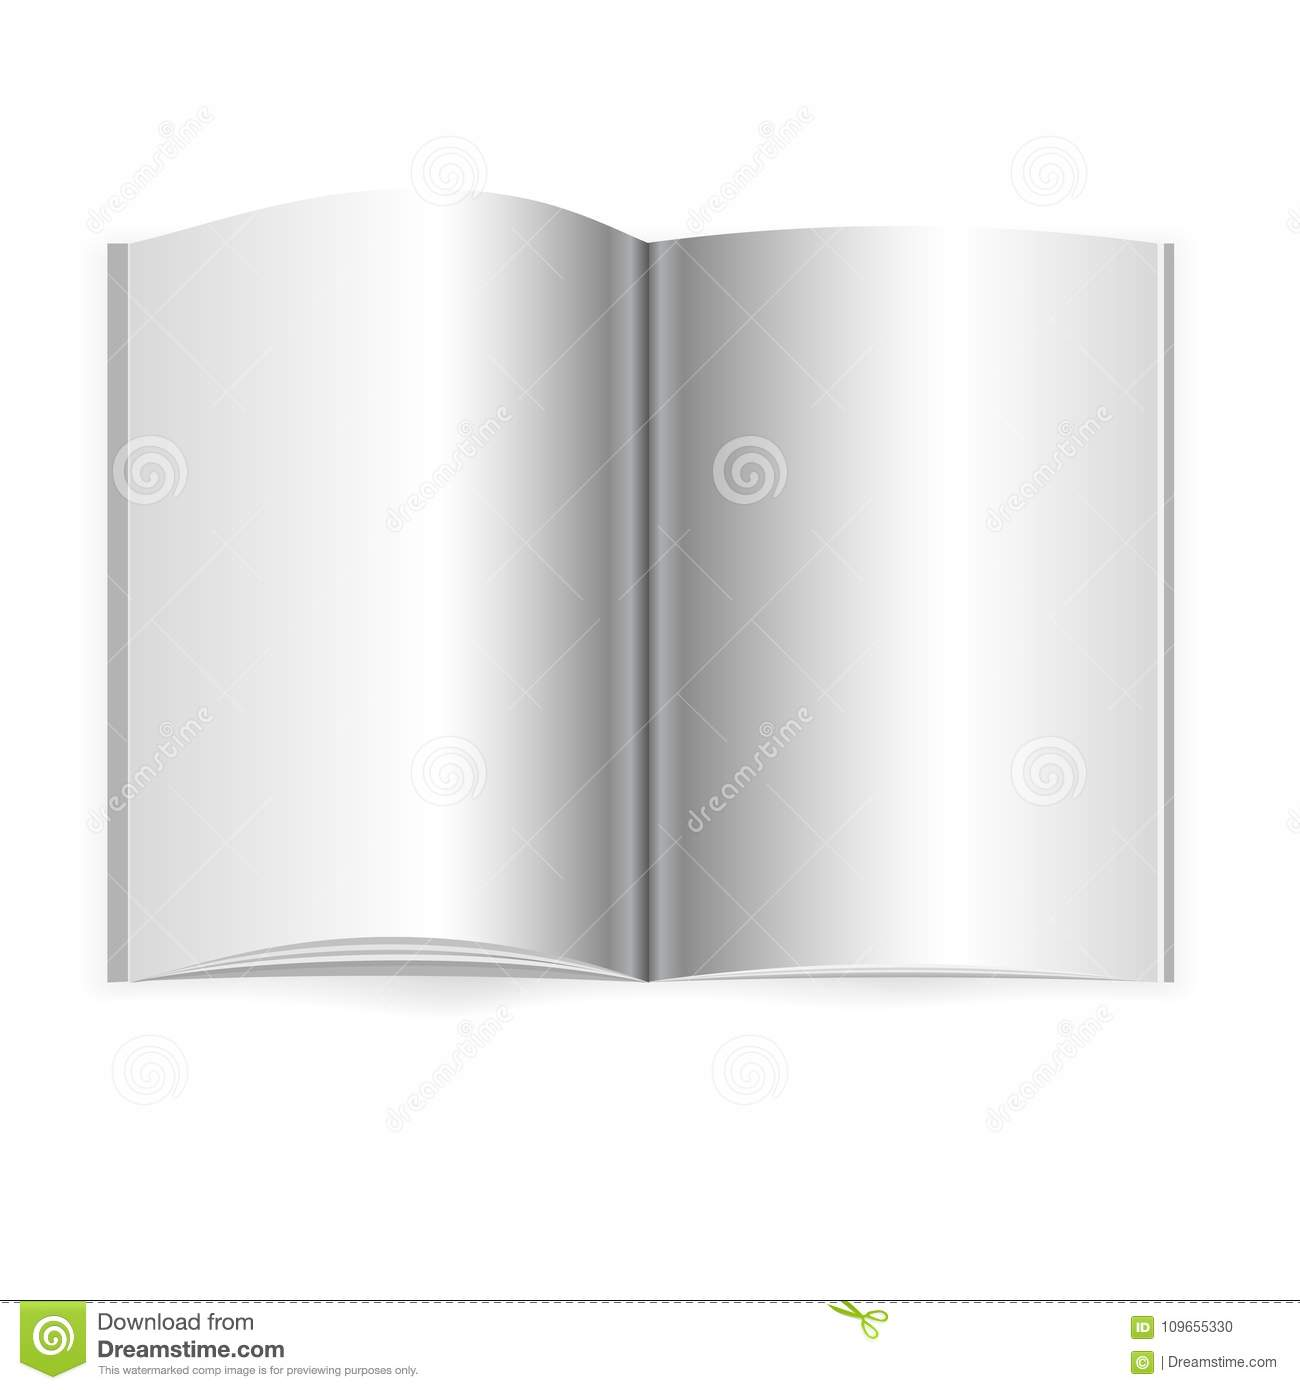 Vector Realistic Opened Book, Journal Or Magazine Mockup With Sheet ...